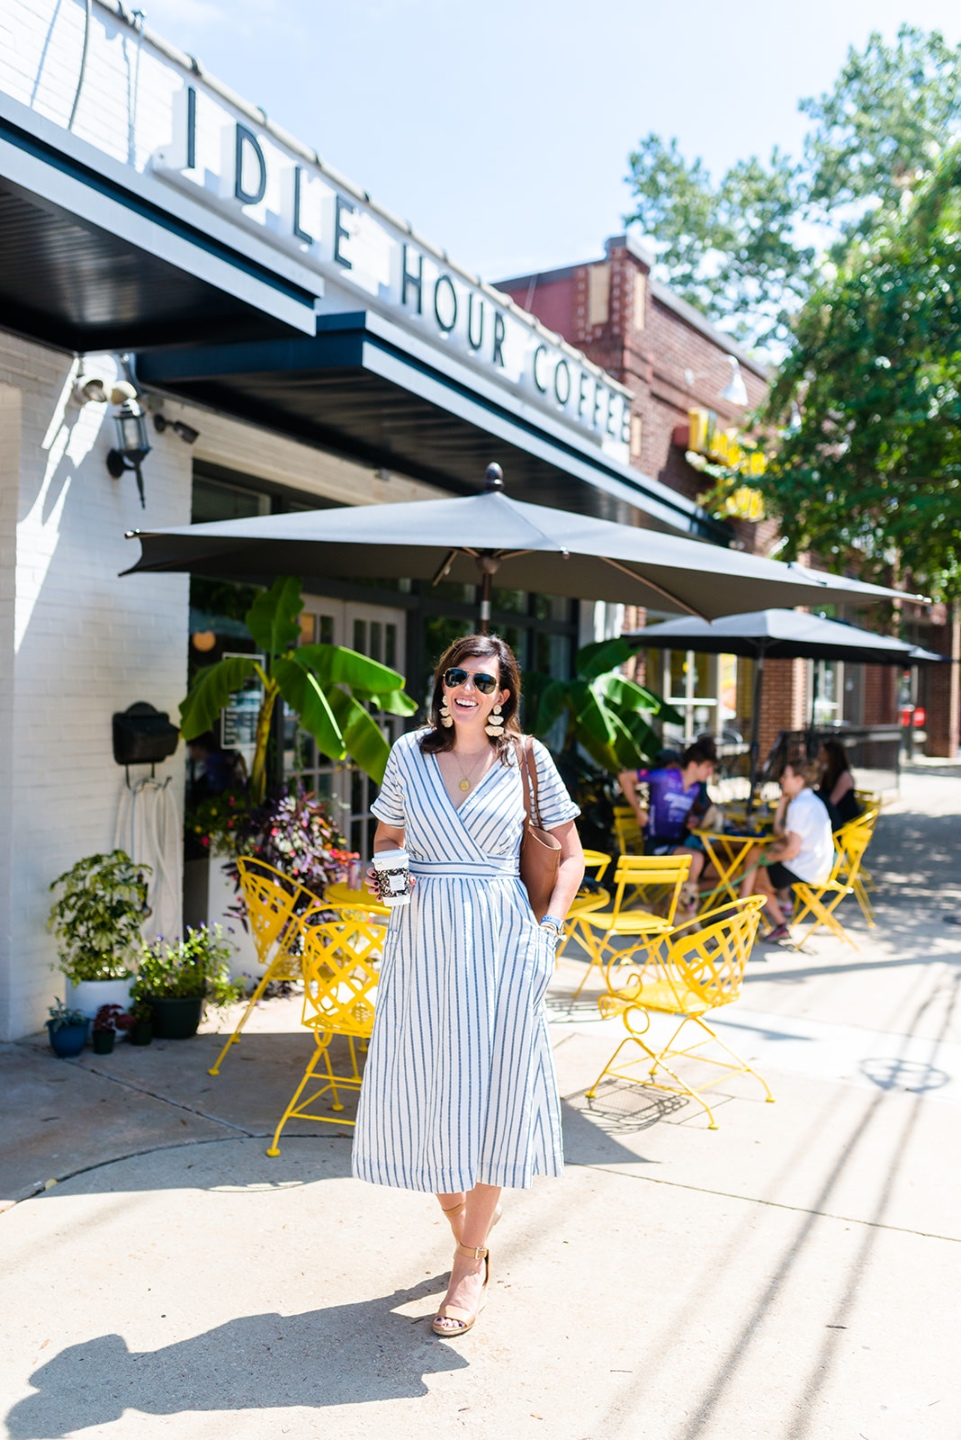 Social Media Free Sunday by popular NC lifestyle blog, I'm Fixin' To: image of a woman walking outside by some yellow tables and chairs and wearing a white and blue stripe dress.